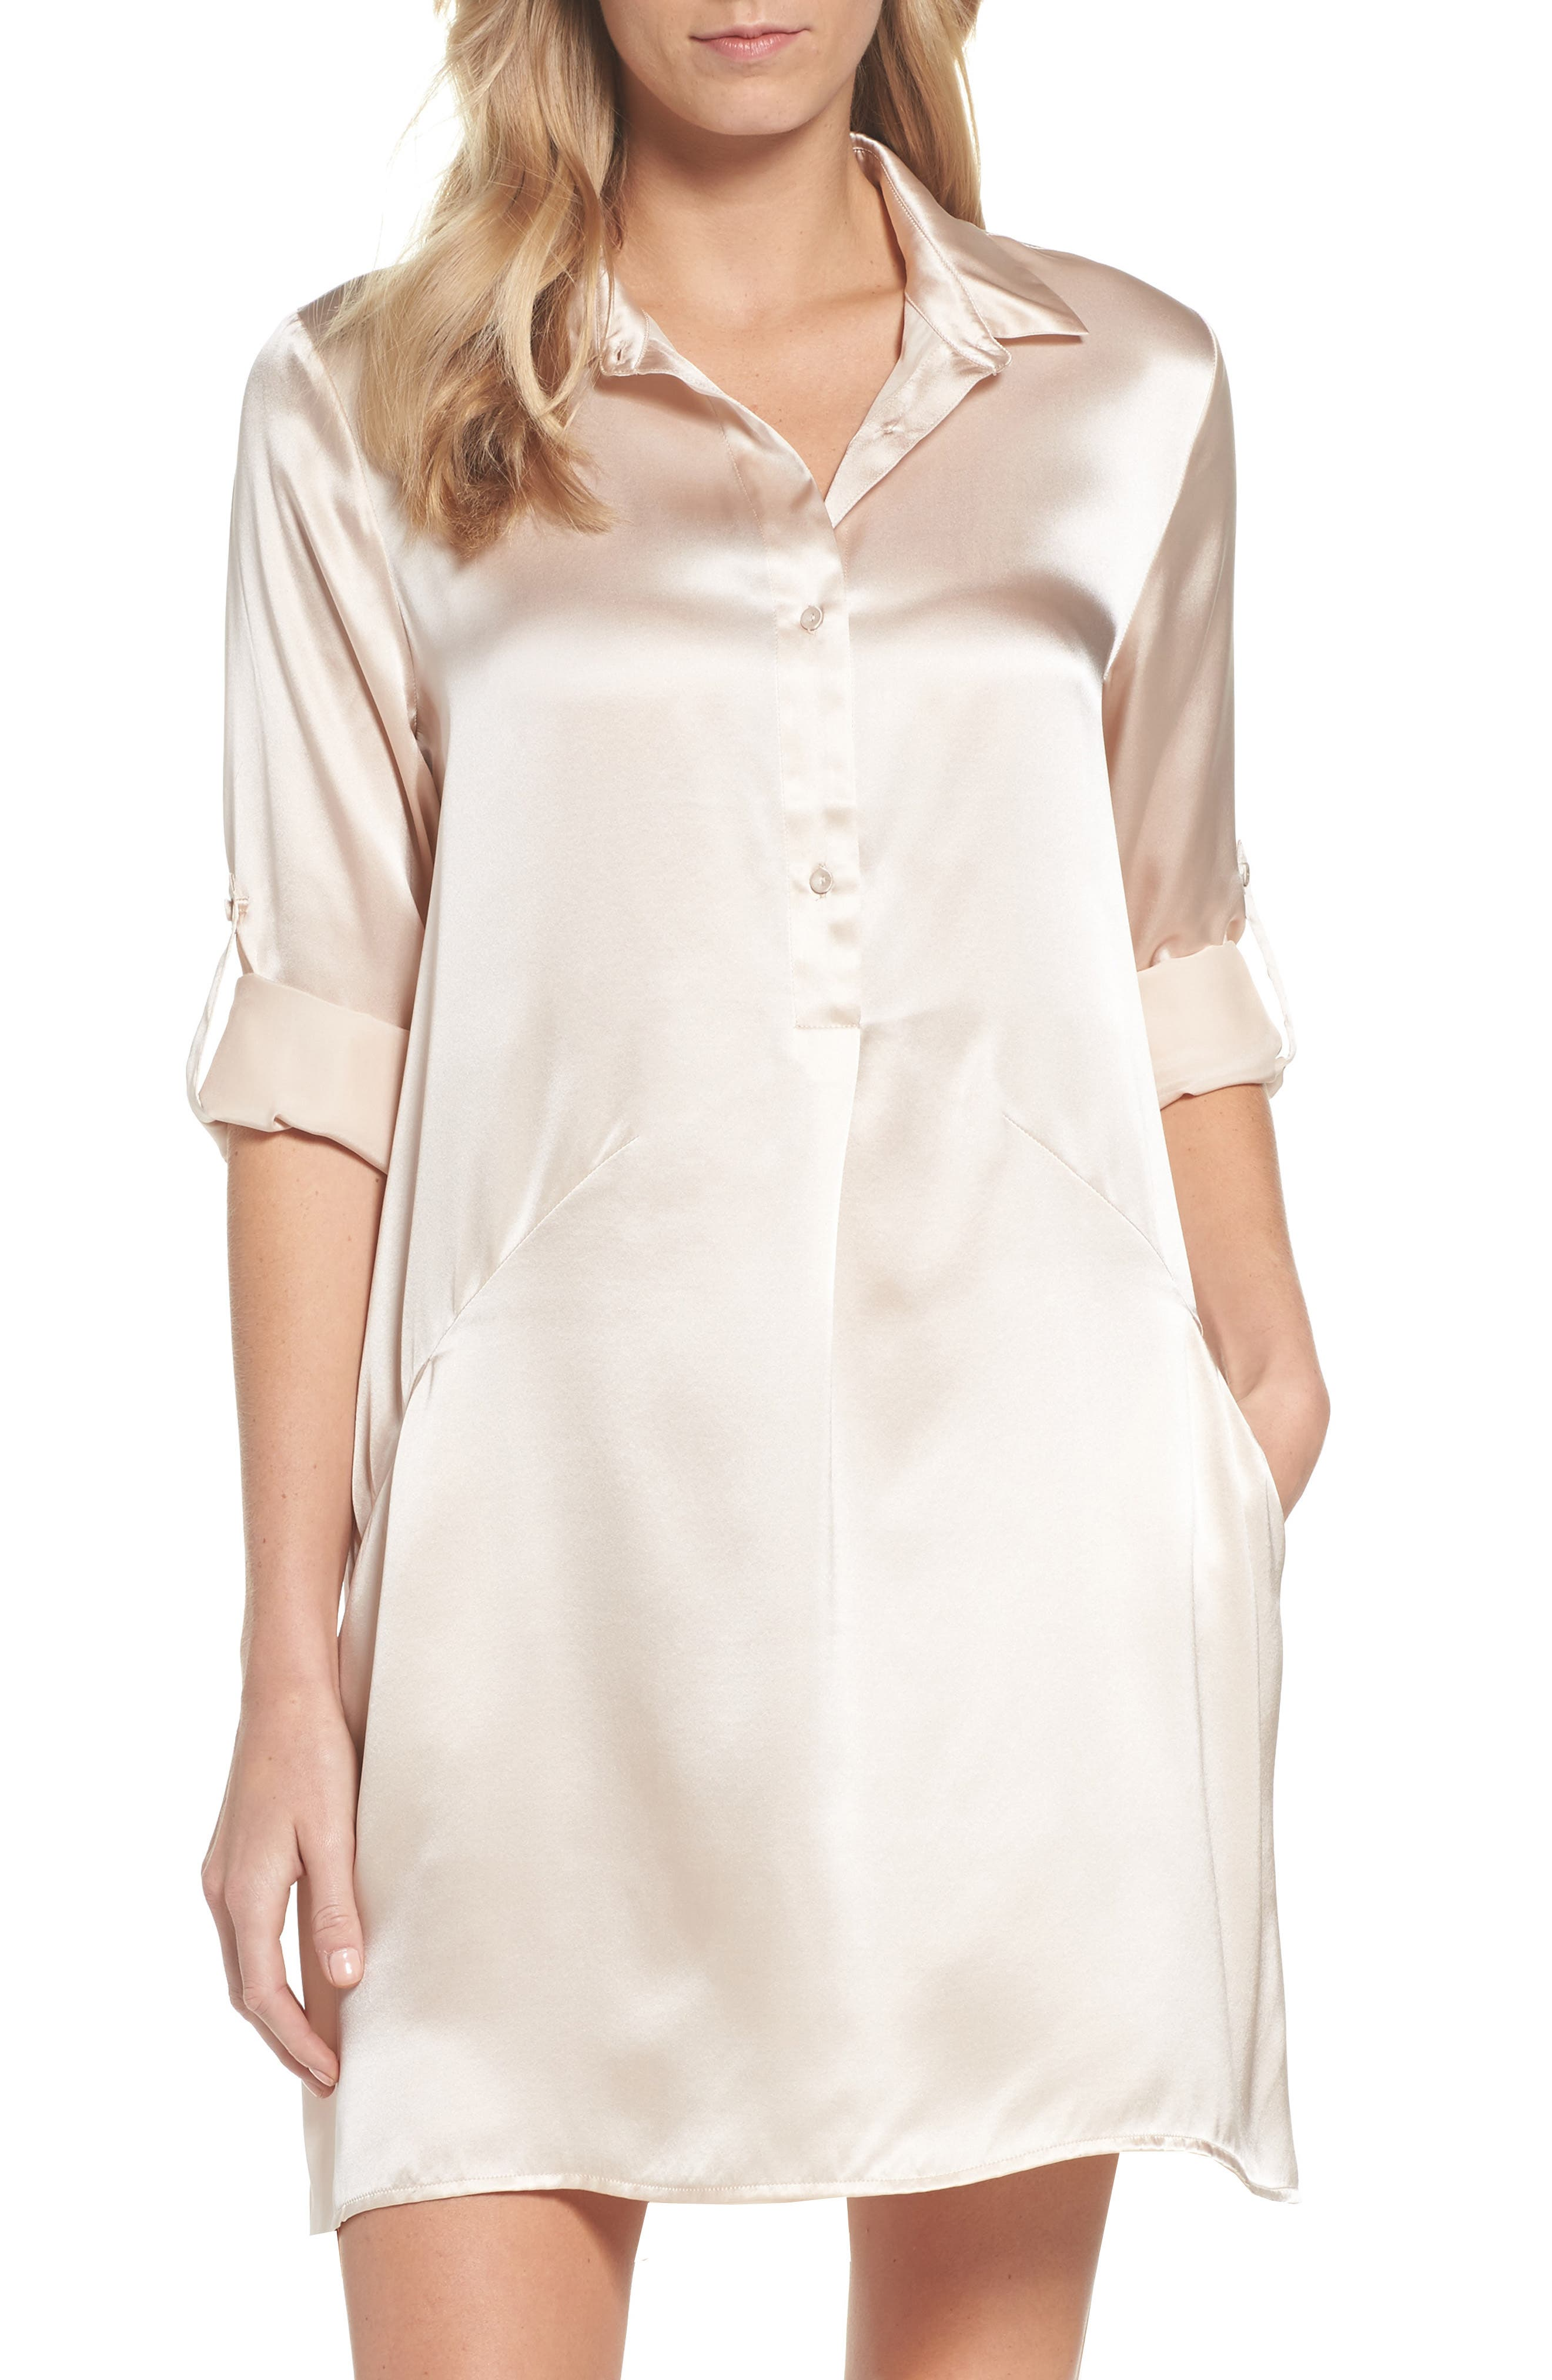 Silk Sleep Shirt,                         Main,                         color, Romance